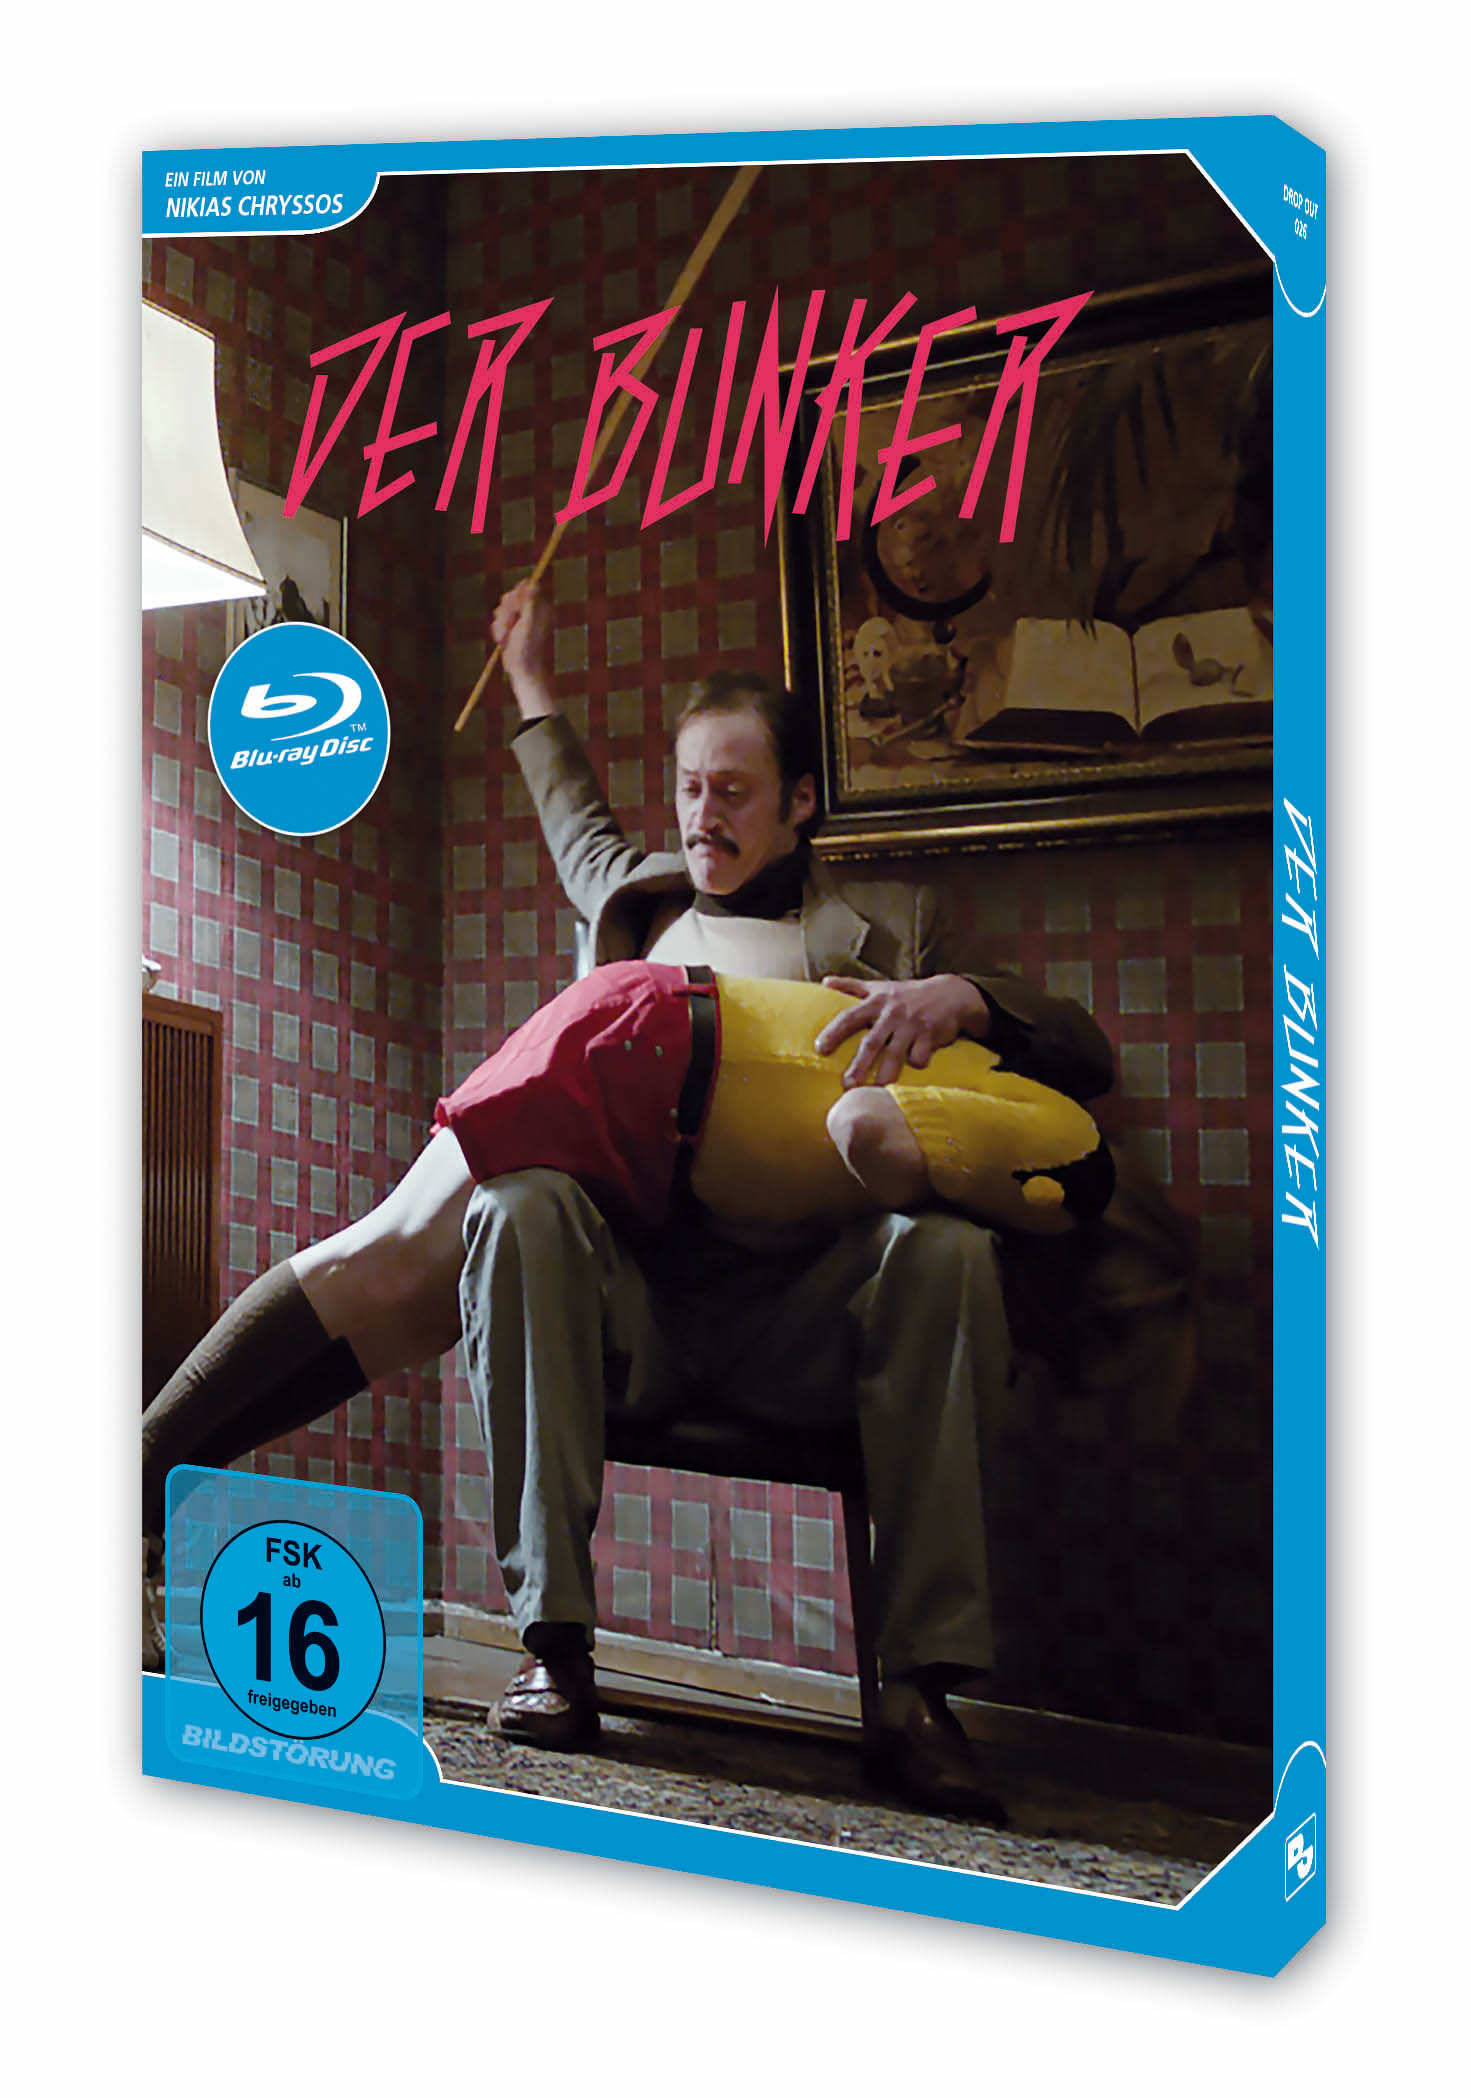 Packshot Blu-ray 3D